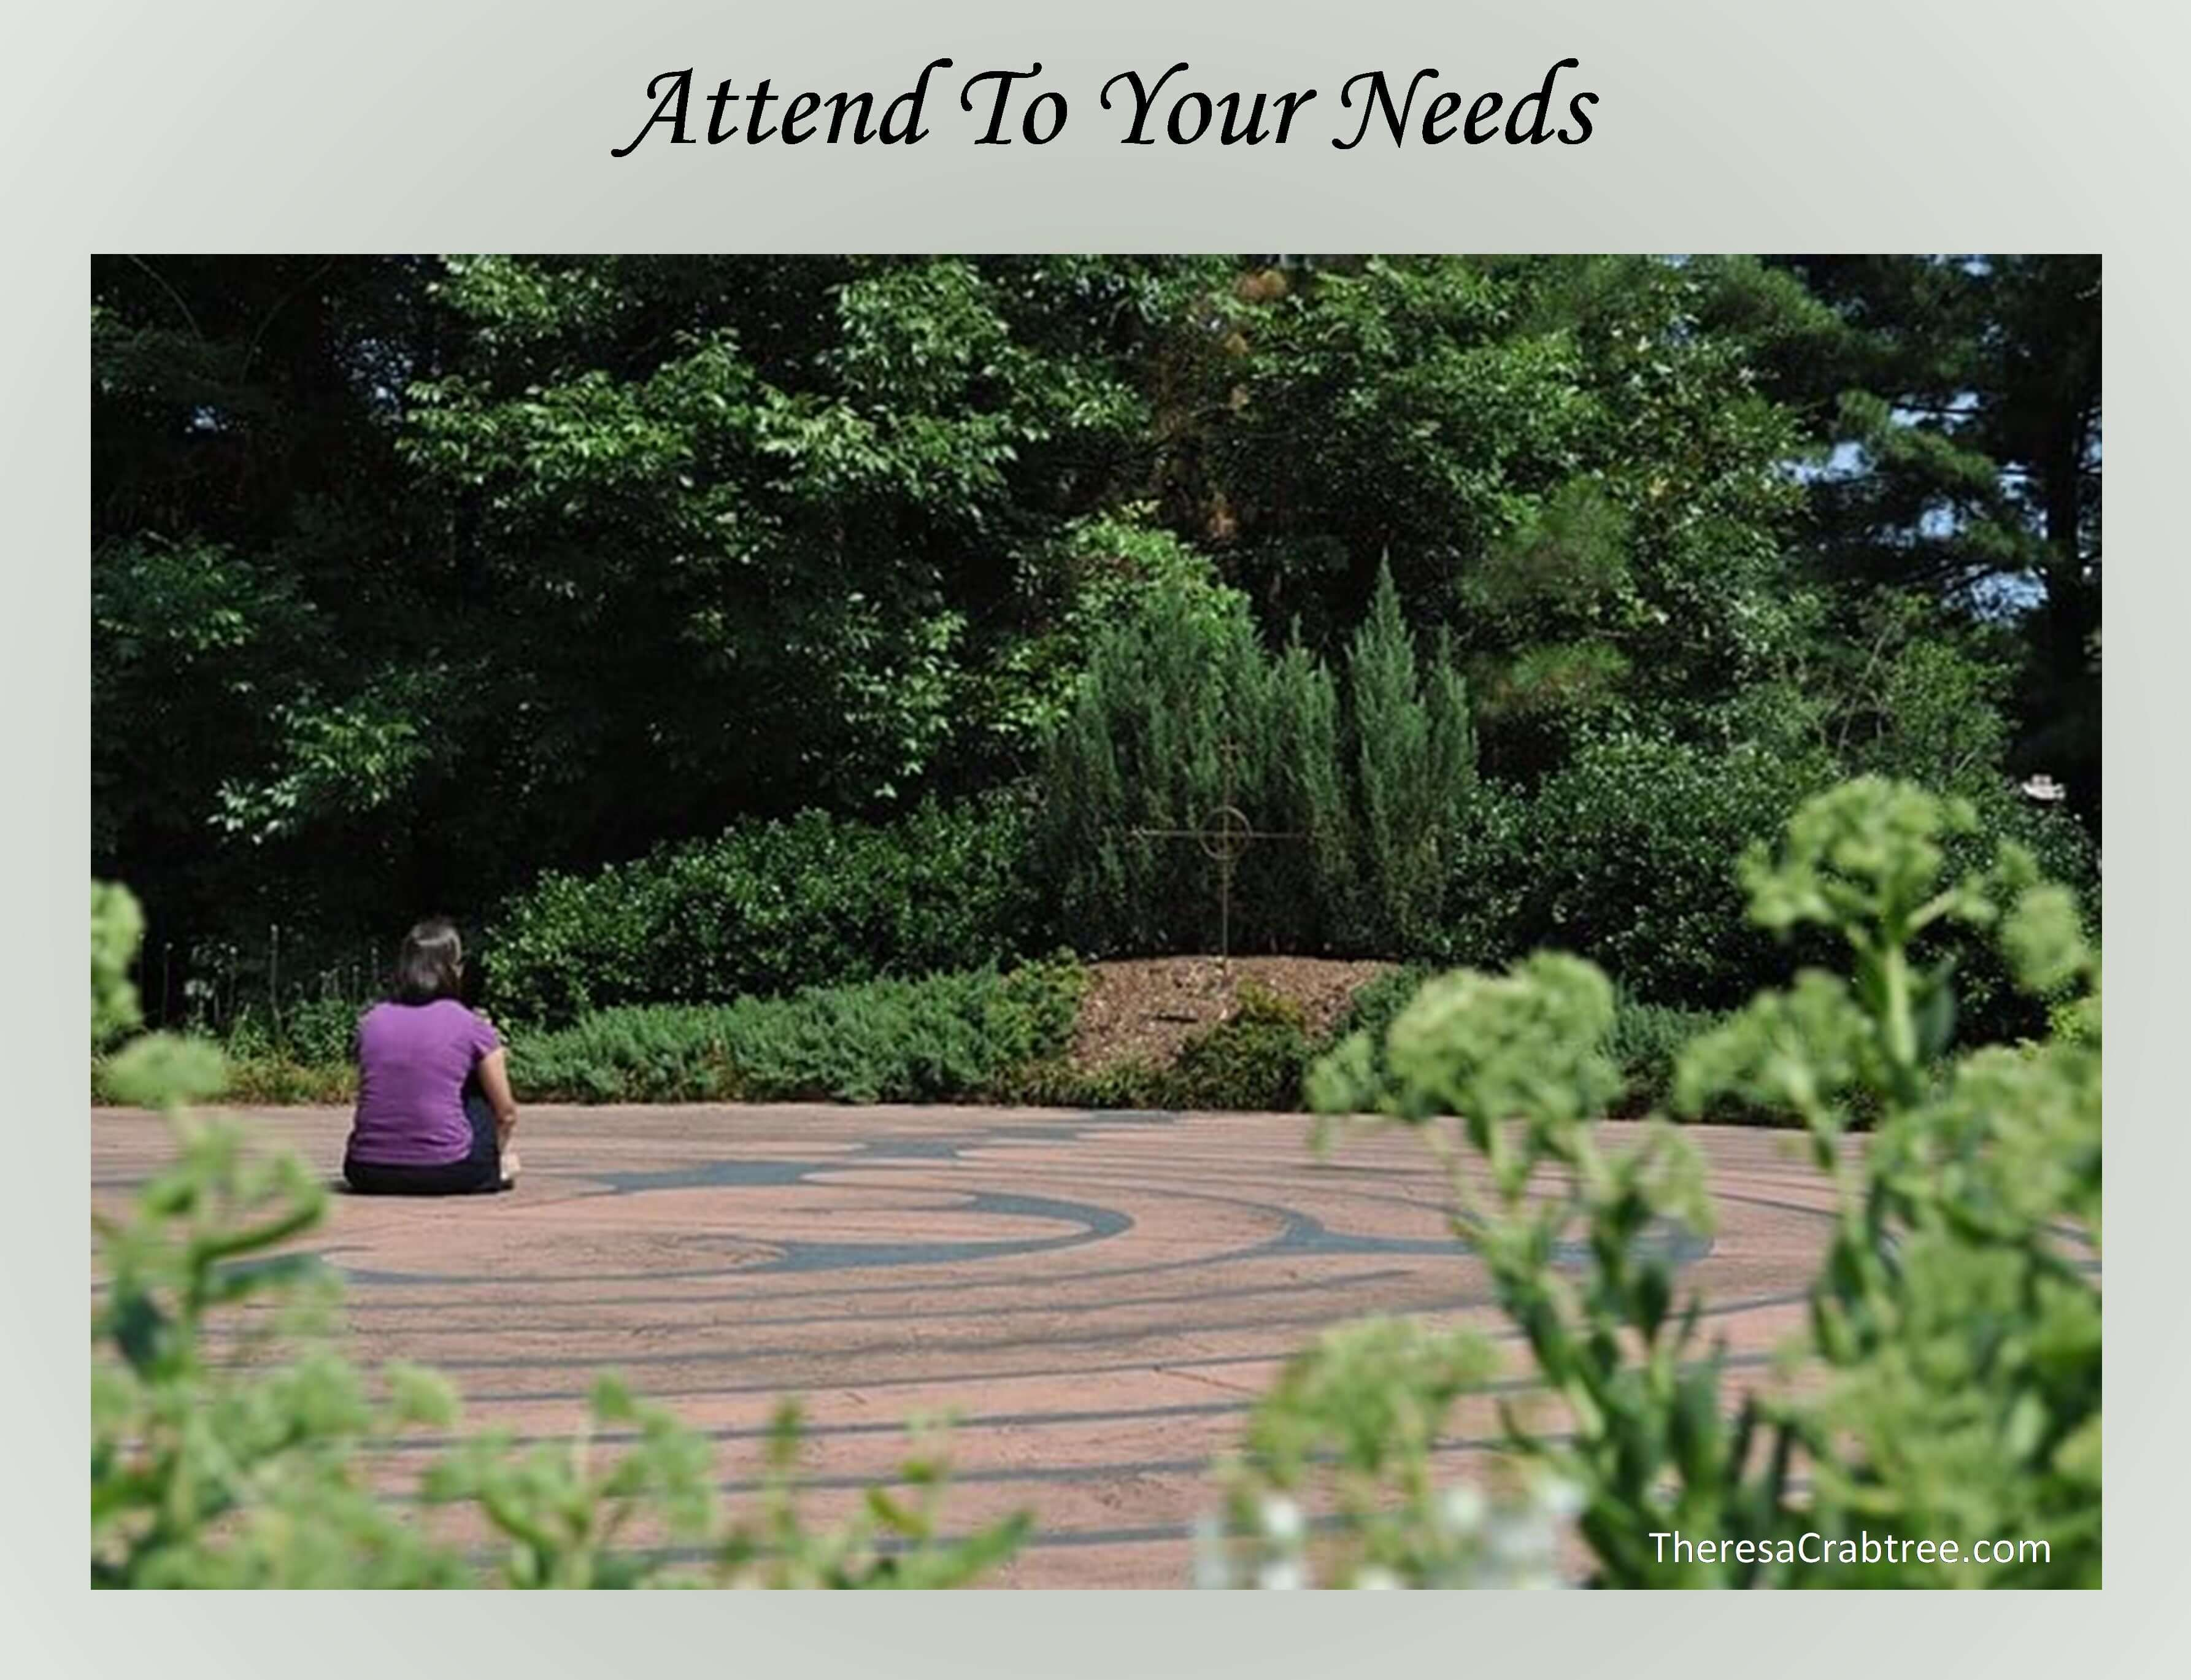 Attend to Your Needs